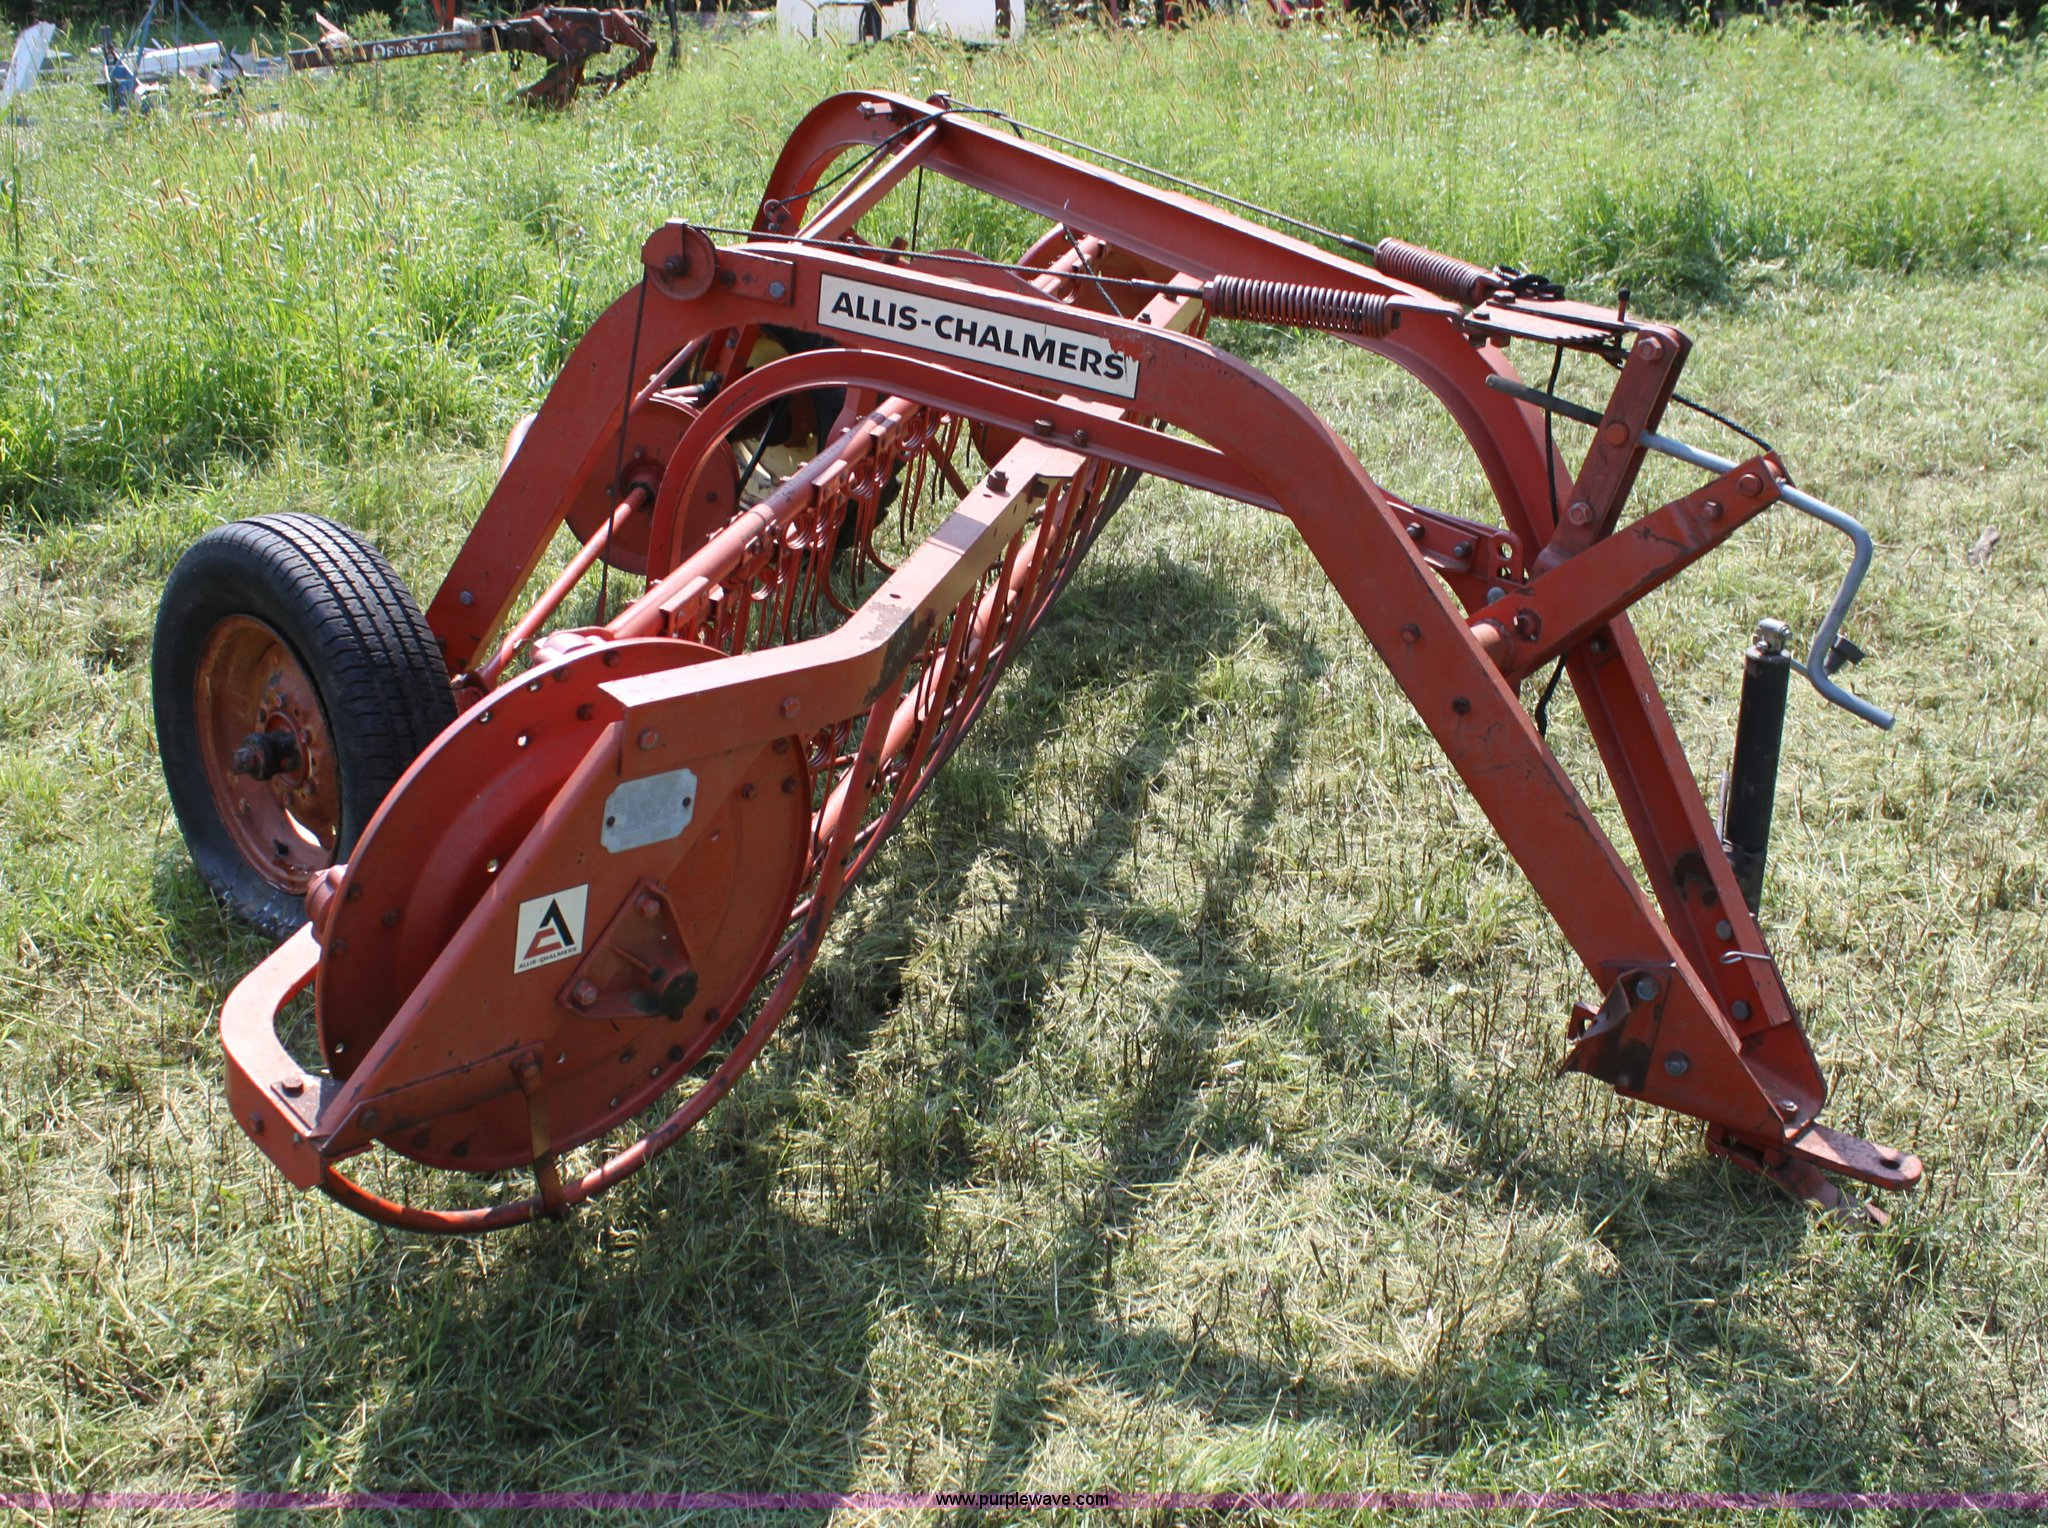 ... Allis Chalmers side delivery hay rake Full size in new window ...